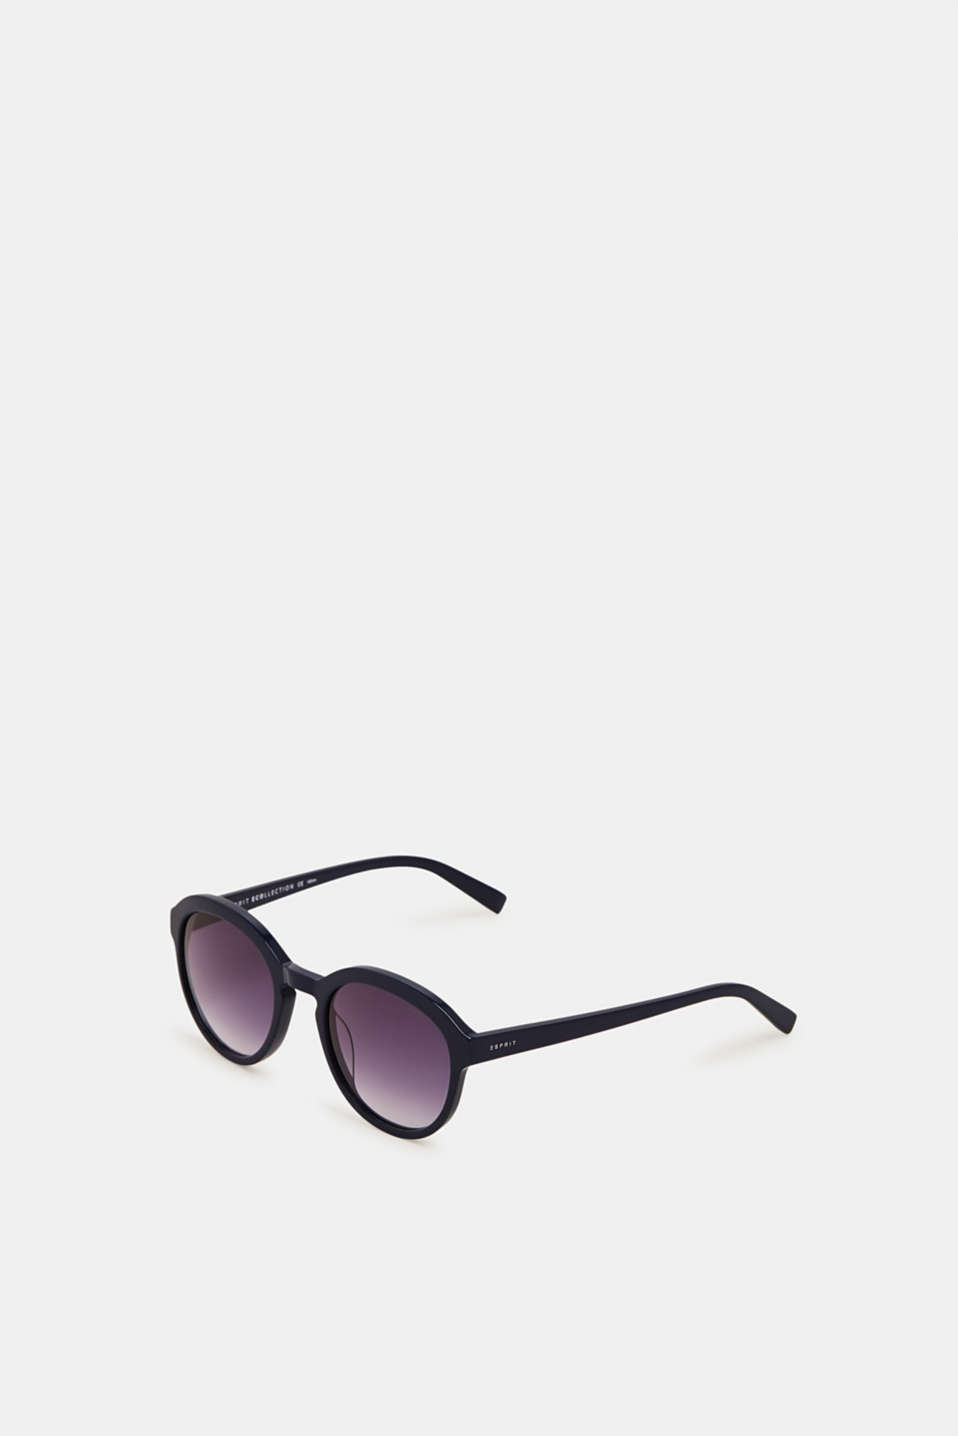 Esprit - 100% biodegradable sunglasses